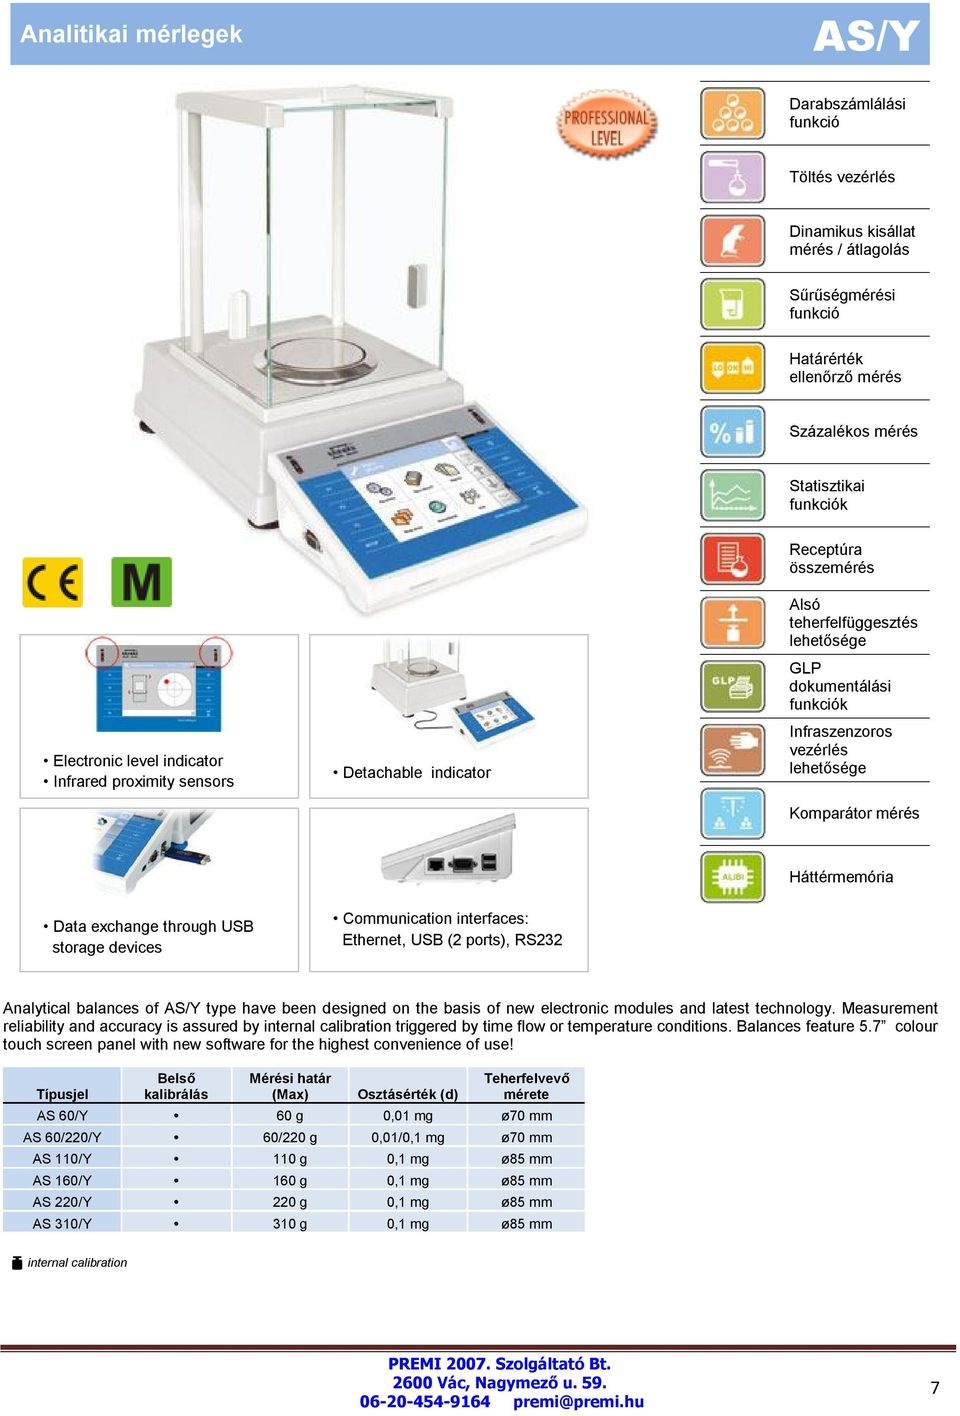 Analytical balances of AS/Y type have been designed on the basis of new electronic modules and latest technology.